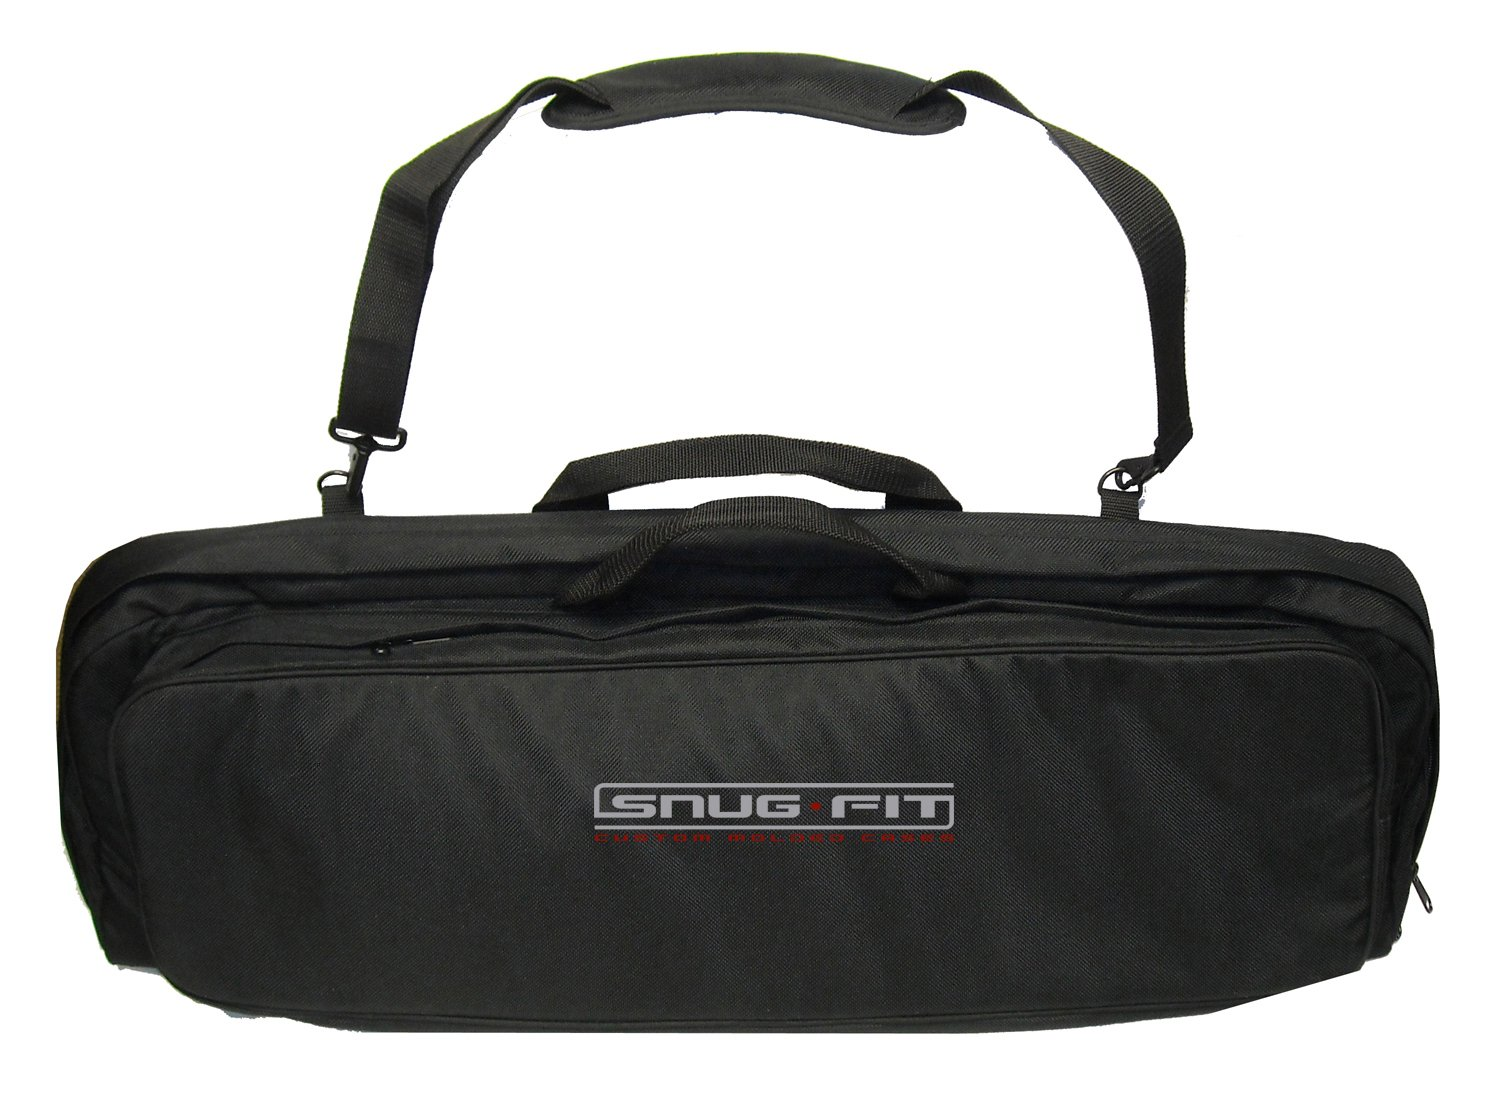 Sportsman's Outdoor Products Snugfit Tactical Gun Case Black (Mixed Color, 42-Inch/Single)